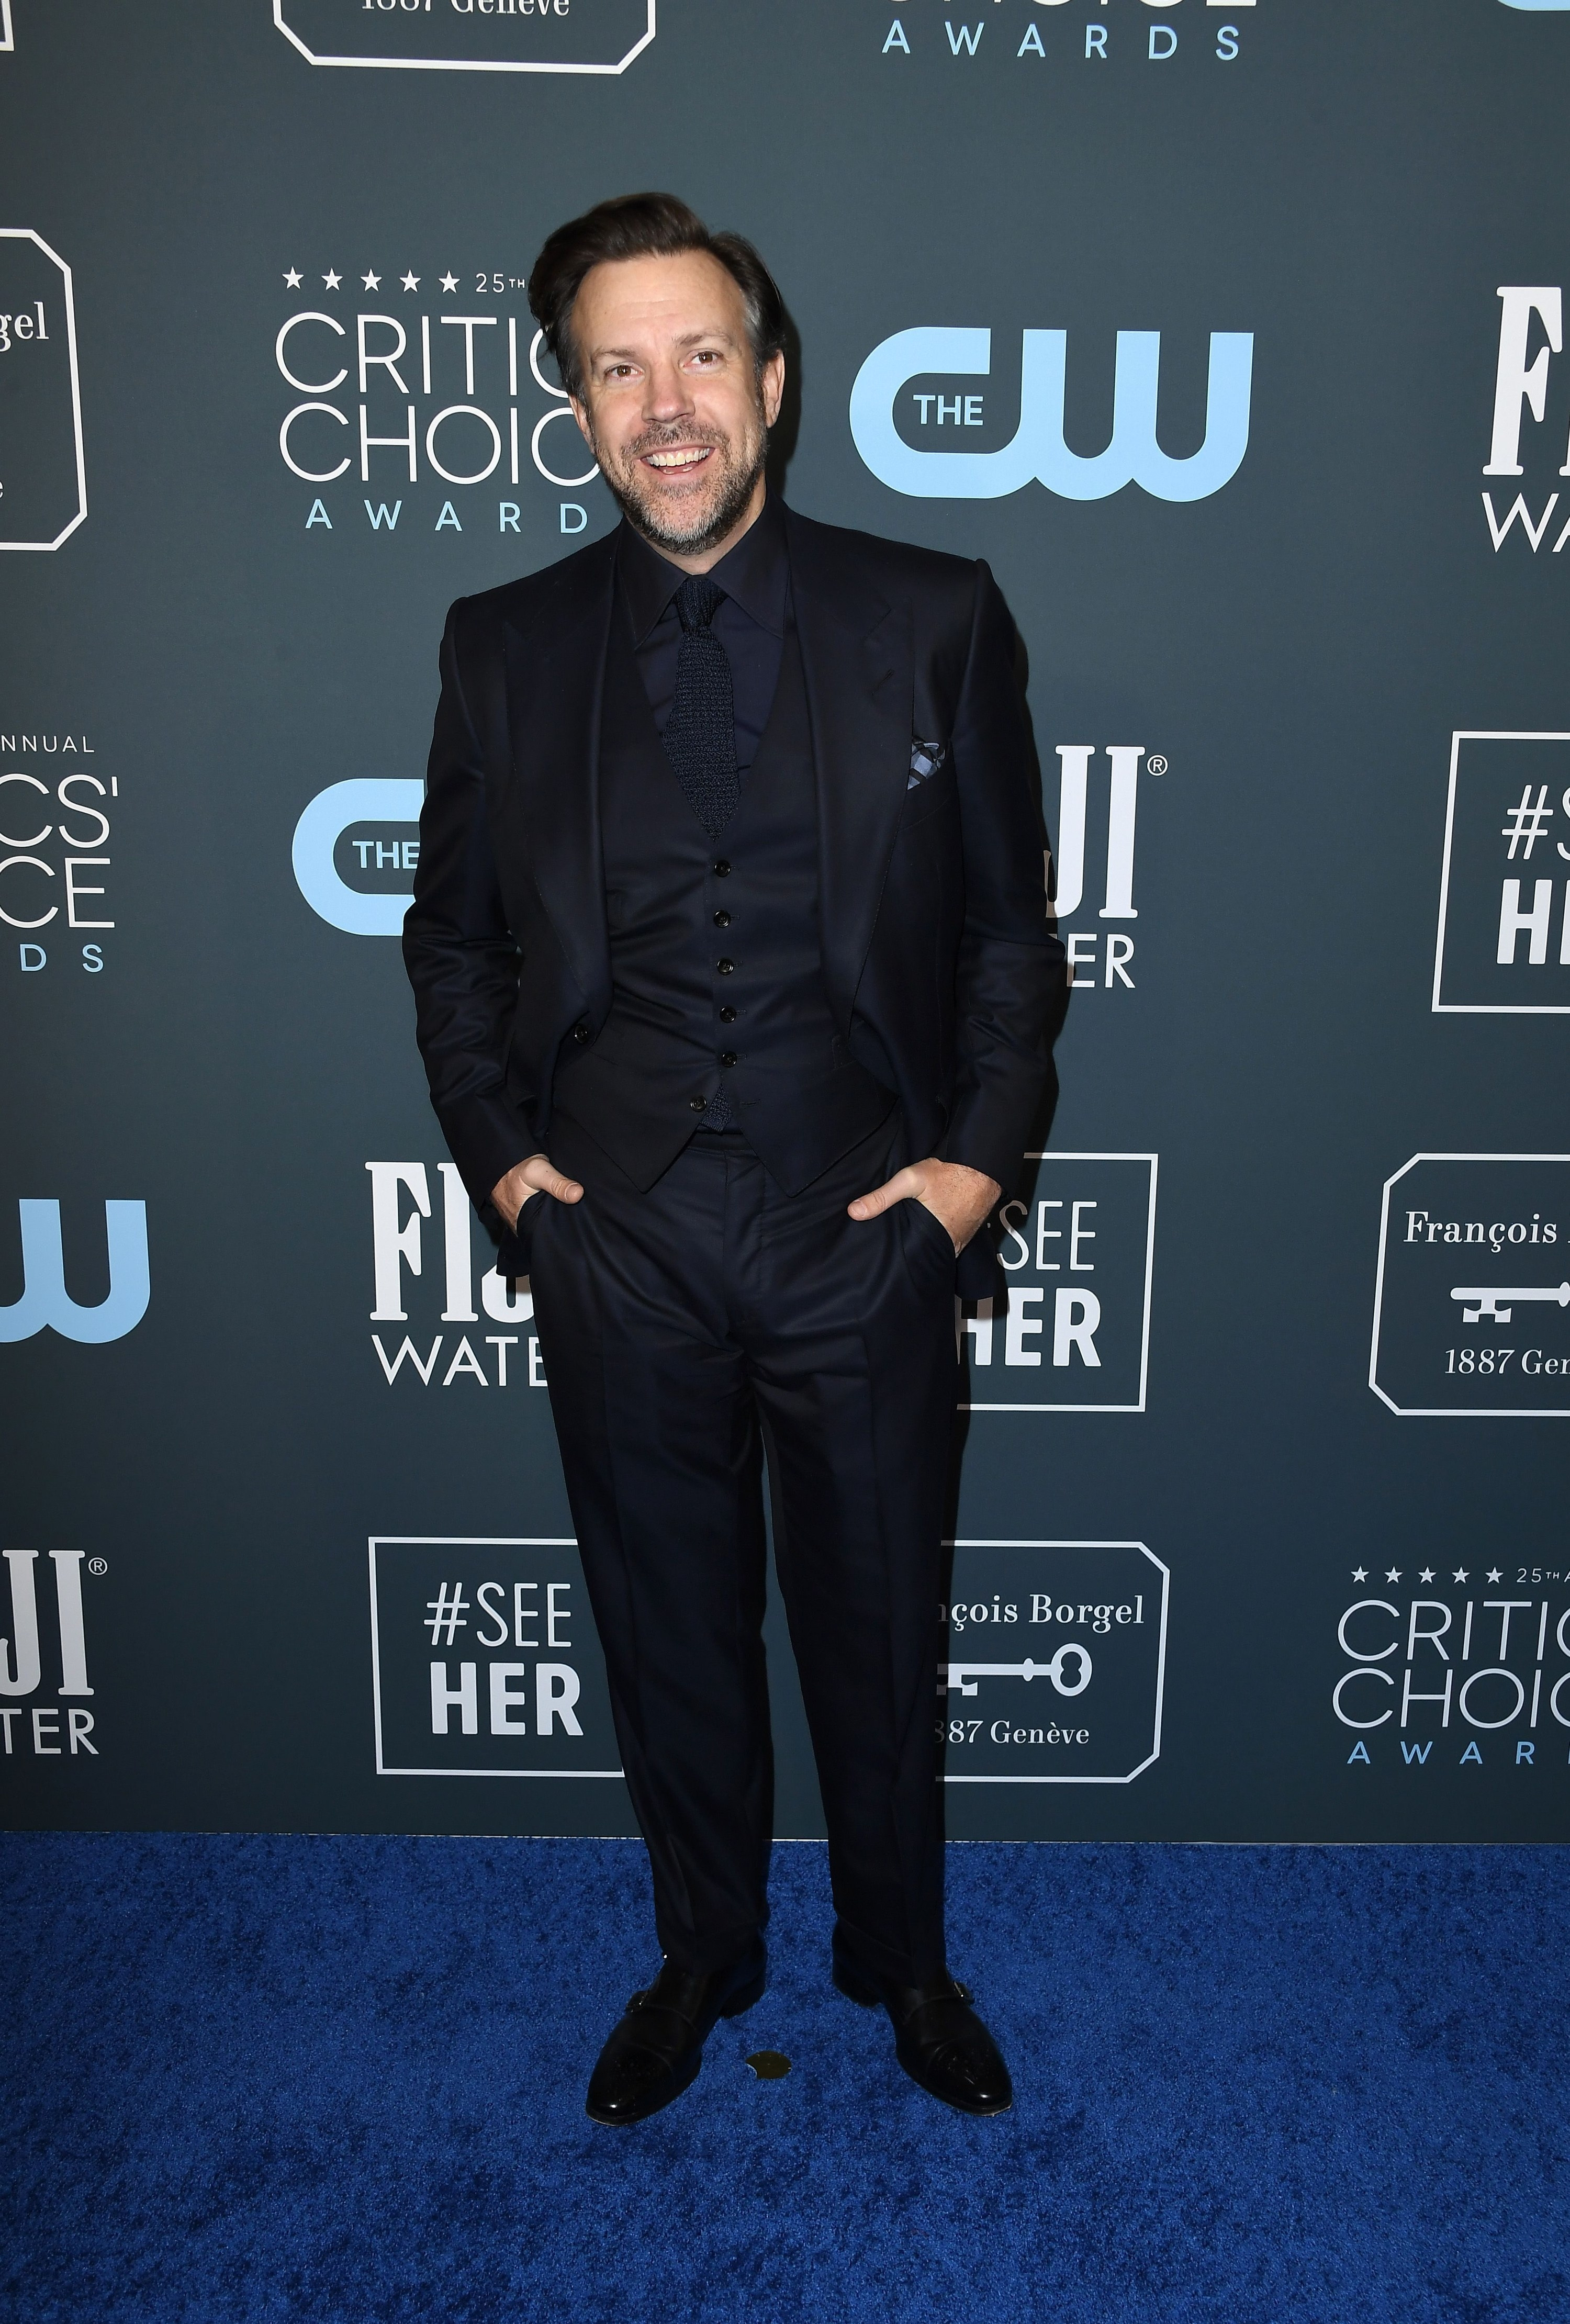 Jason in a suit at the 25th Critics Choice Awards